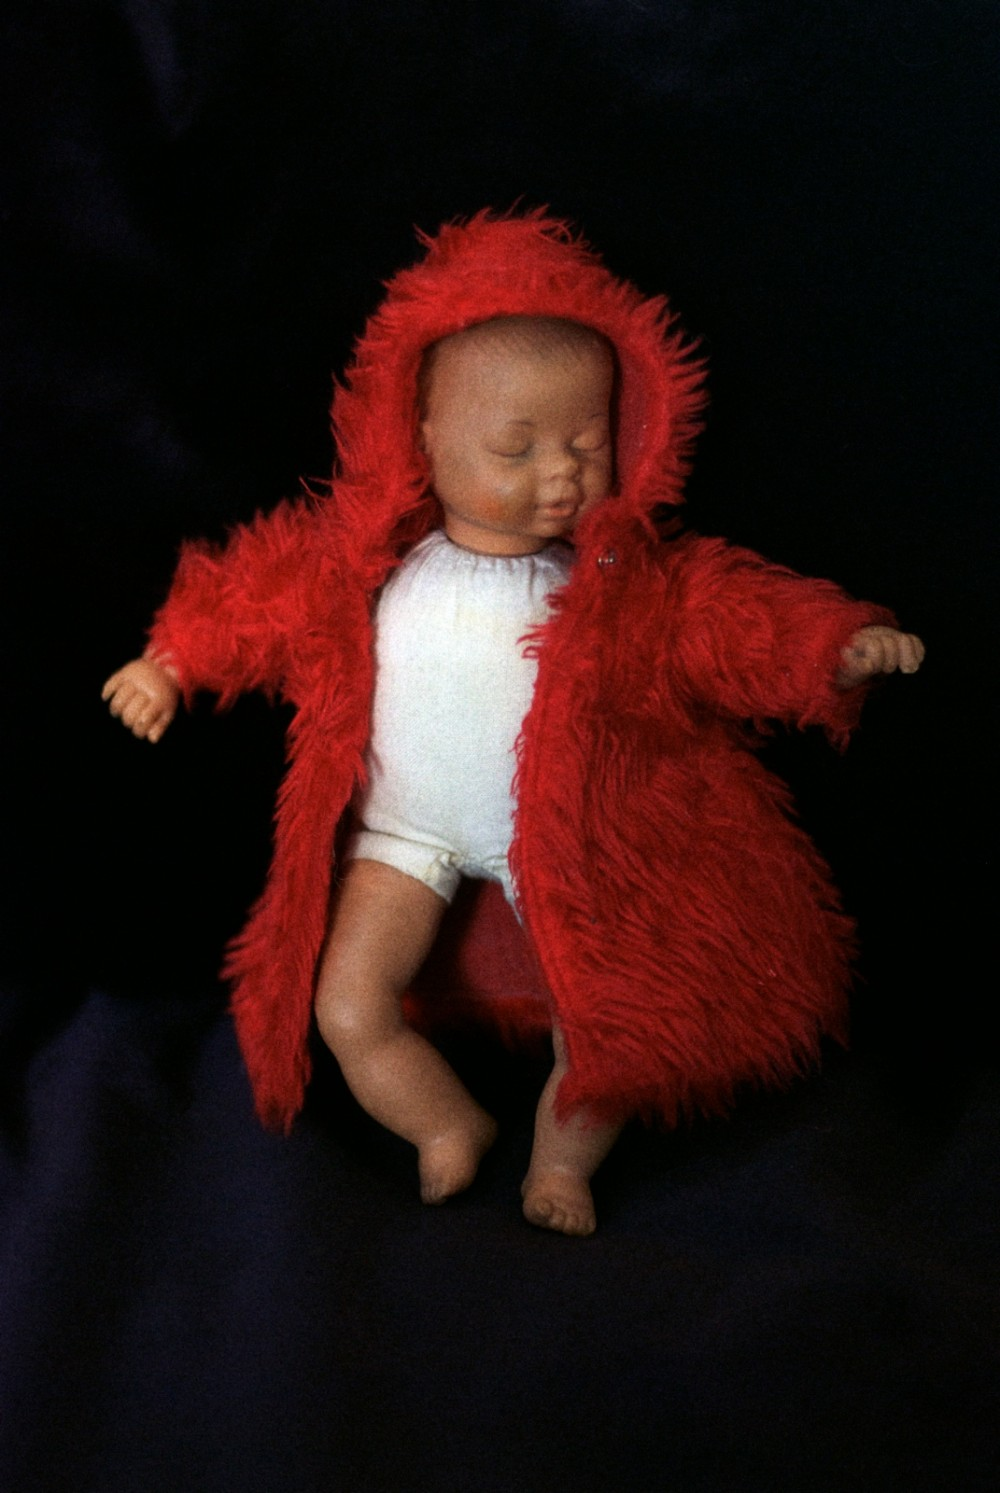 09 Dec - Red Fur Coat Baby